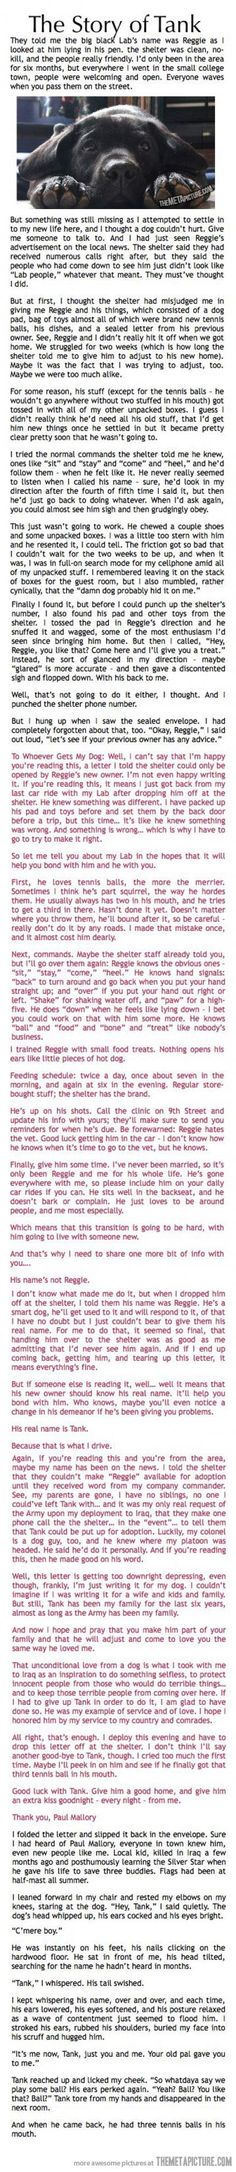 Not related to Bostons at all, but if this is a legit story...  Just cried my eyes out.